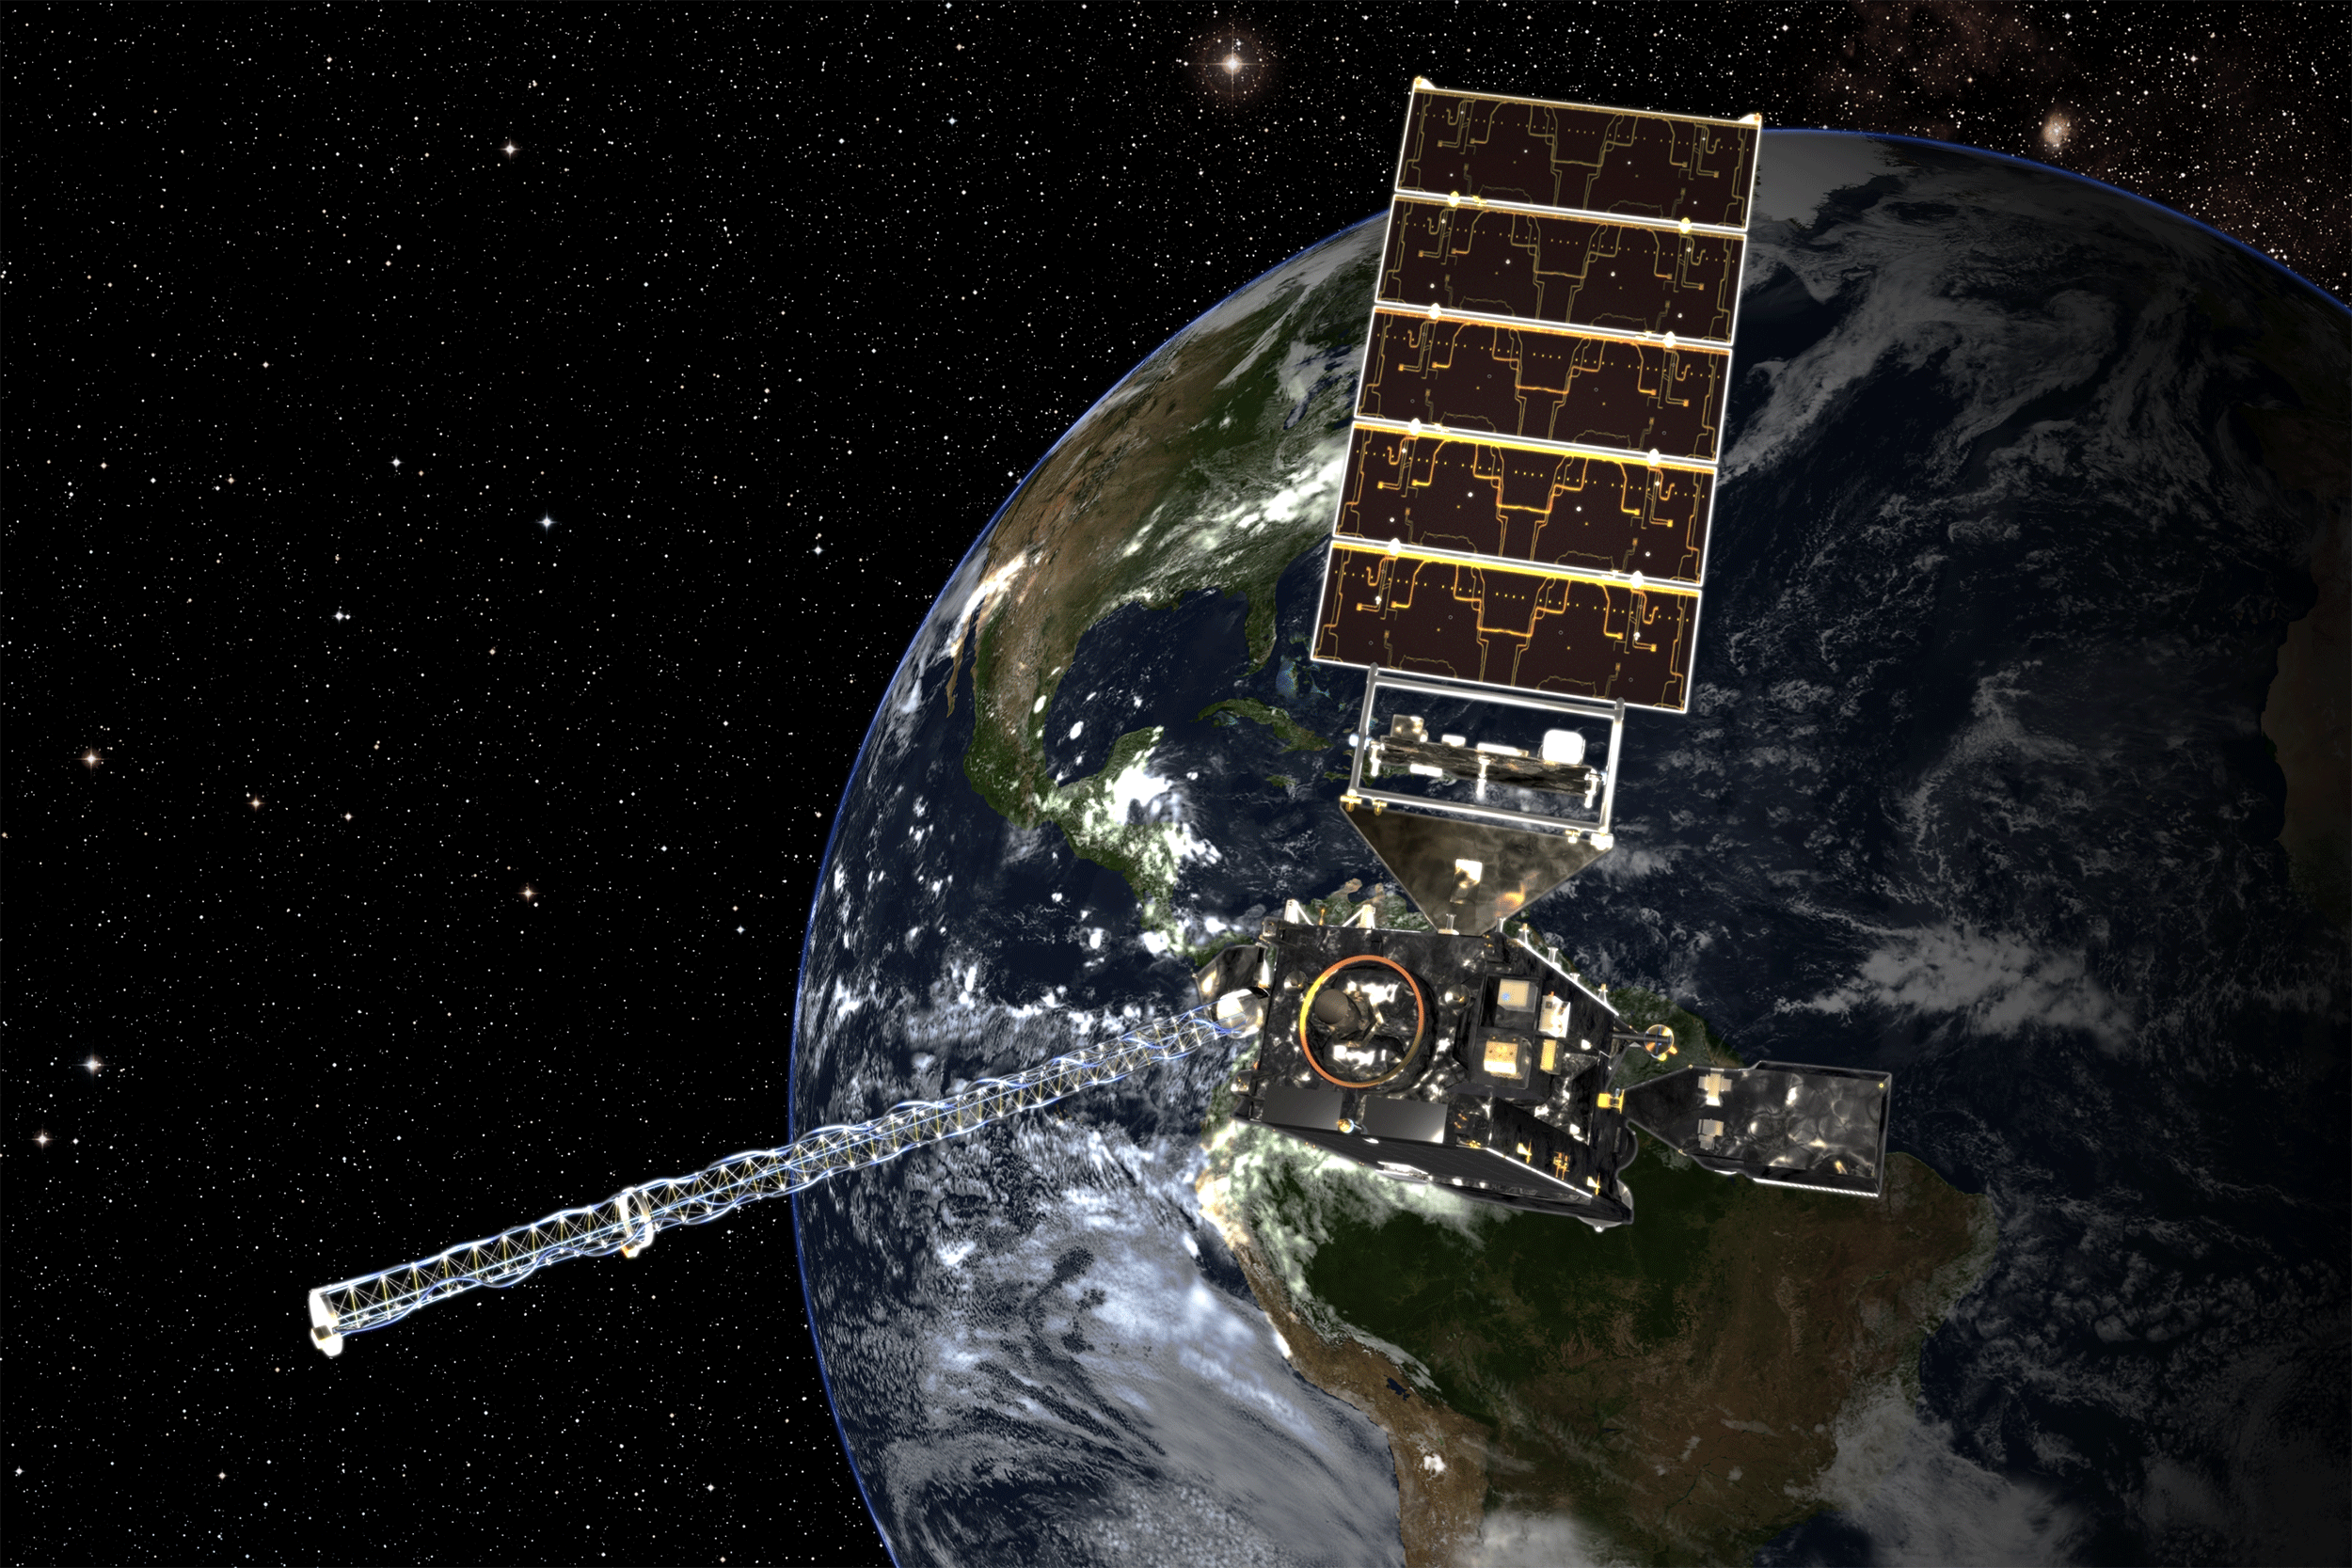 NOAA's GOES-16 satellite